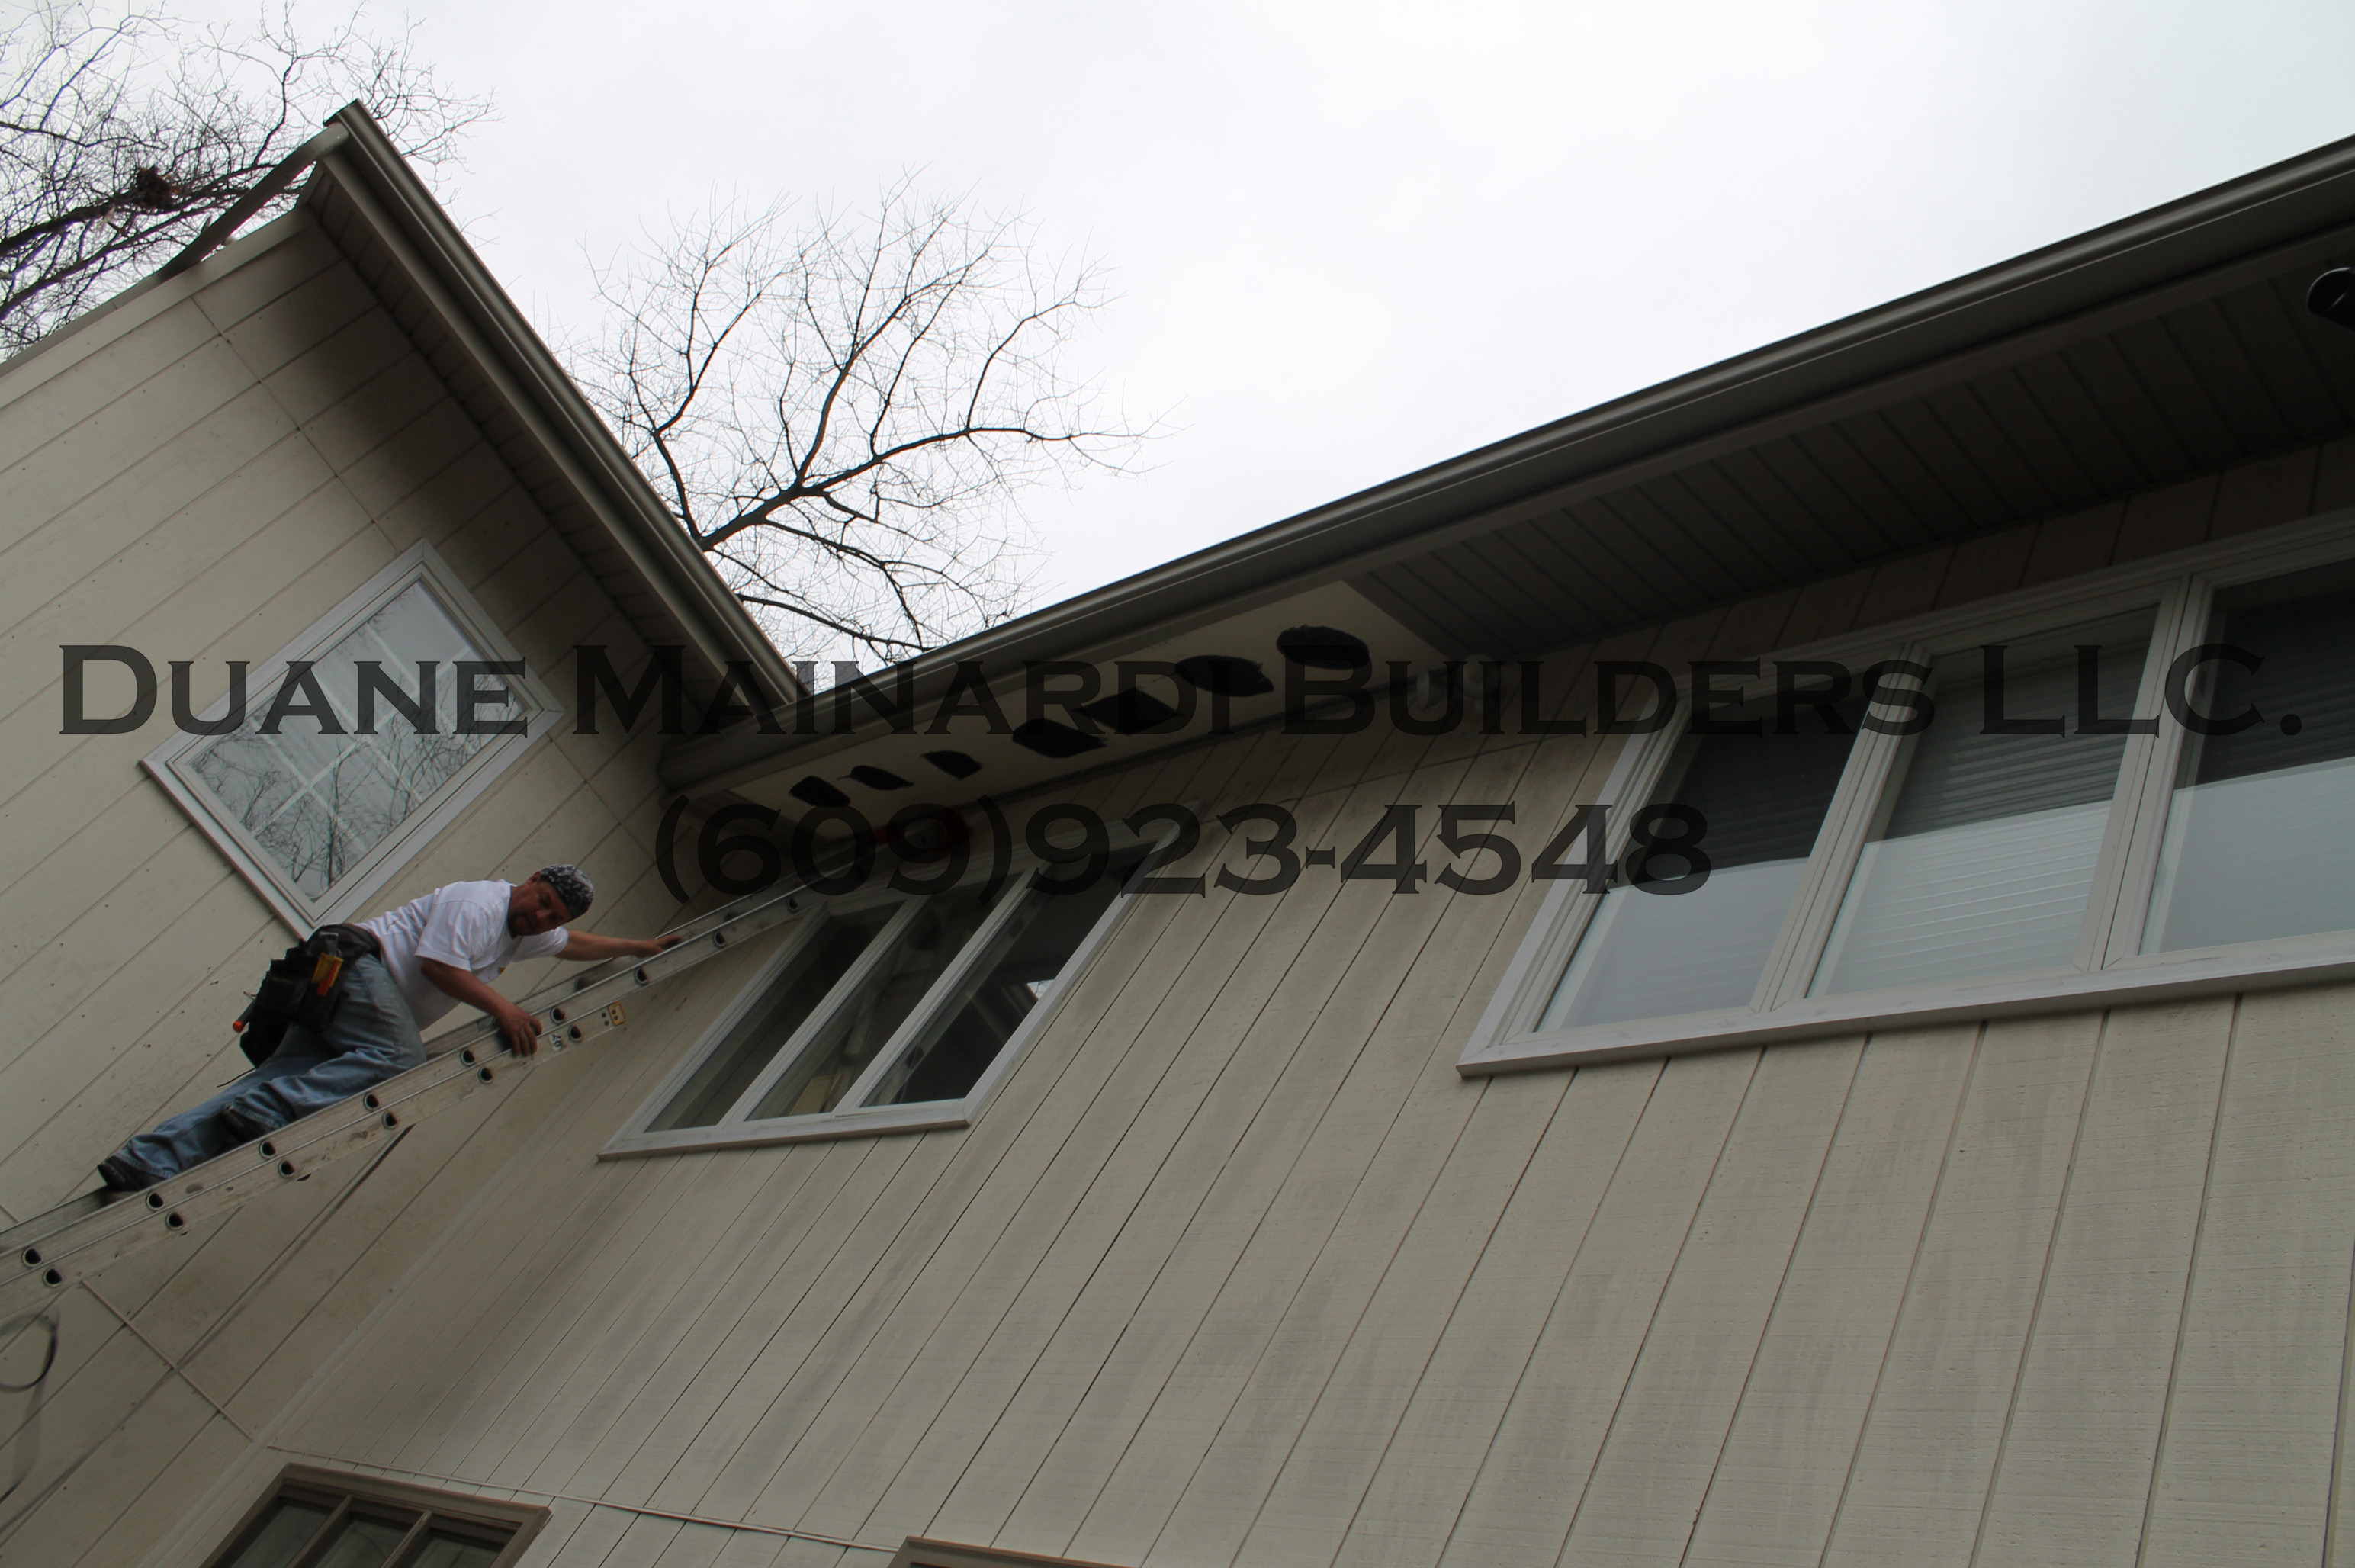 Siding South Jersey Roofing Marlton Roofers